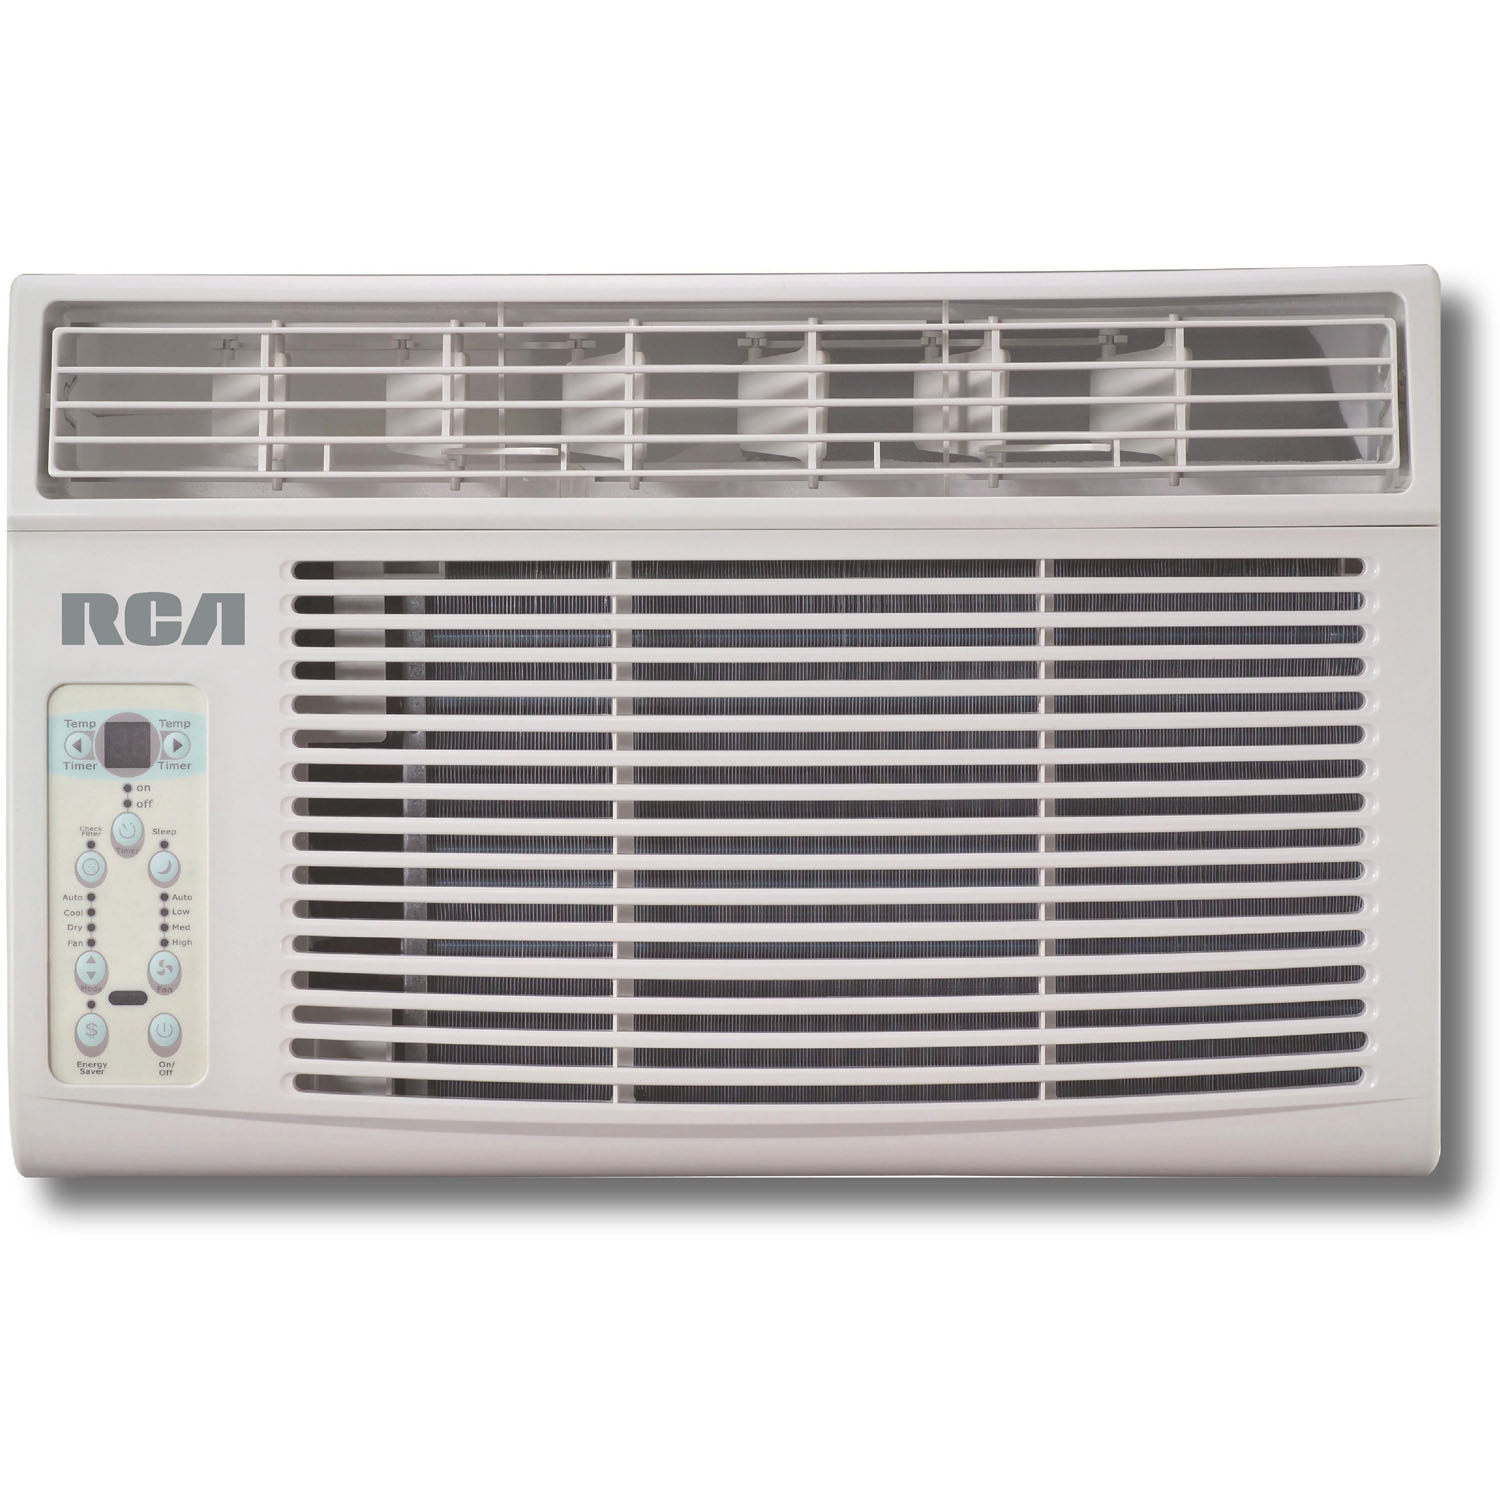 Rca 12 000 btu 115v window air conditioner with remote for 12k btu window air conditioner